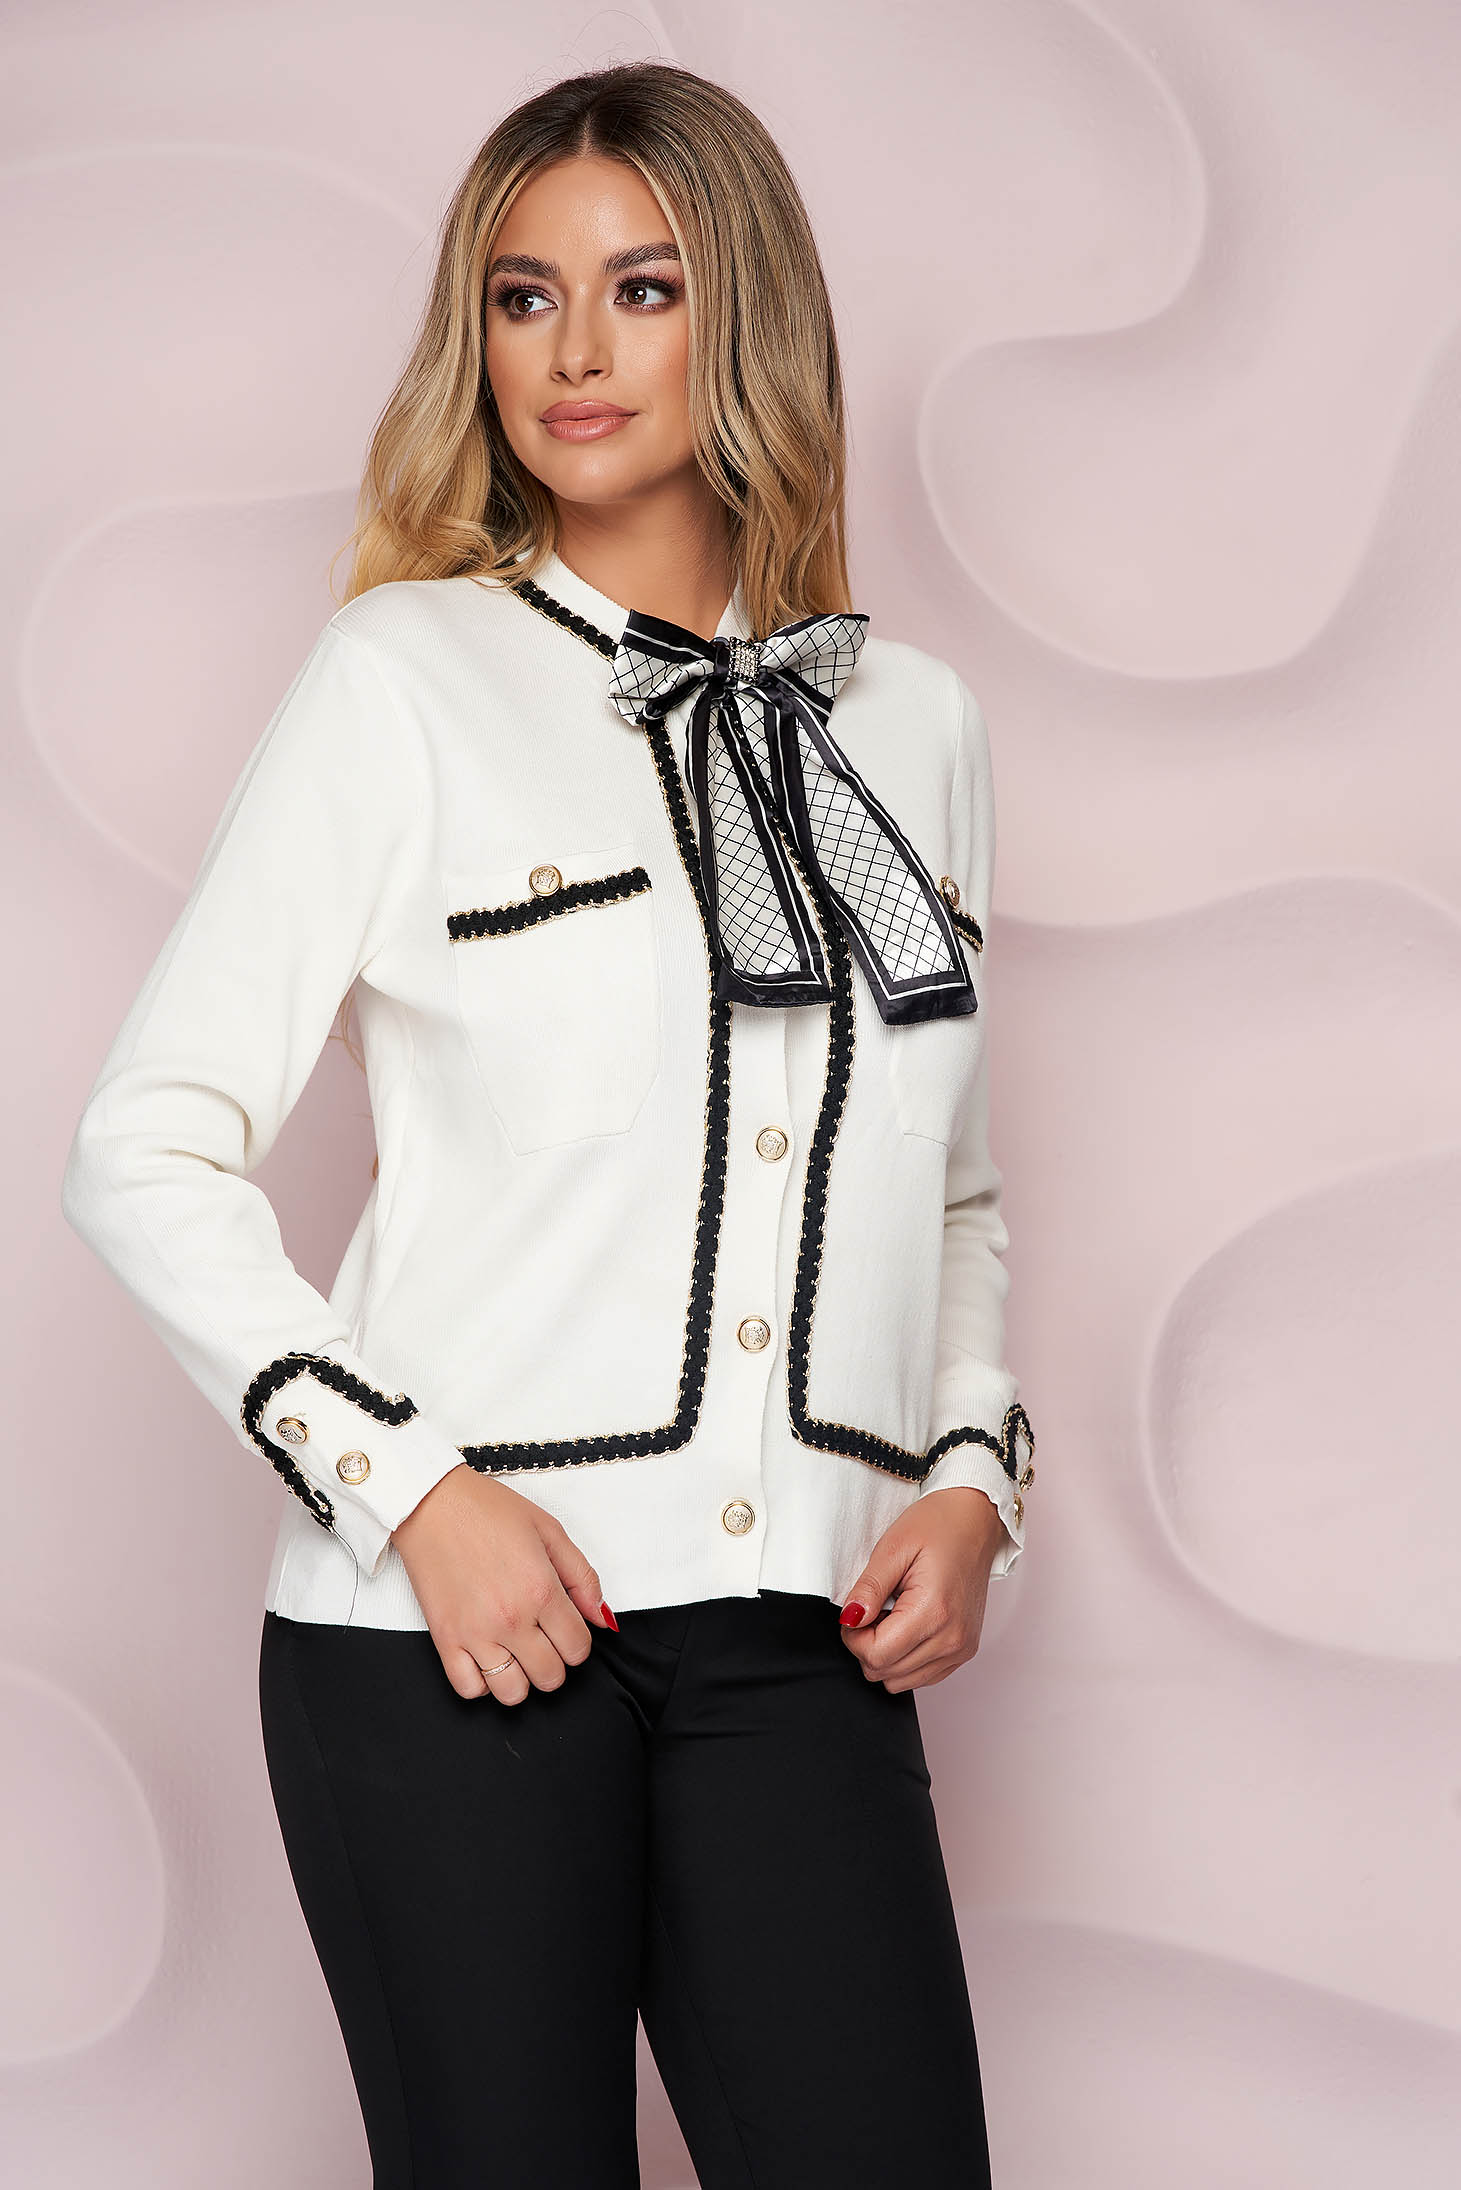 Ivory cardigan thin fabric accessorized with breastpin from elastic fabric closure with gold buttons knitted fabric